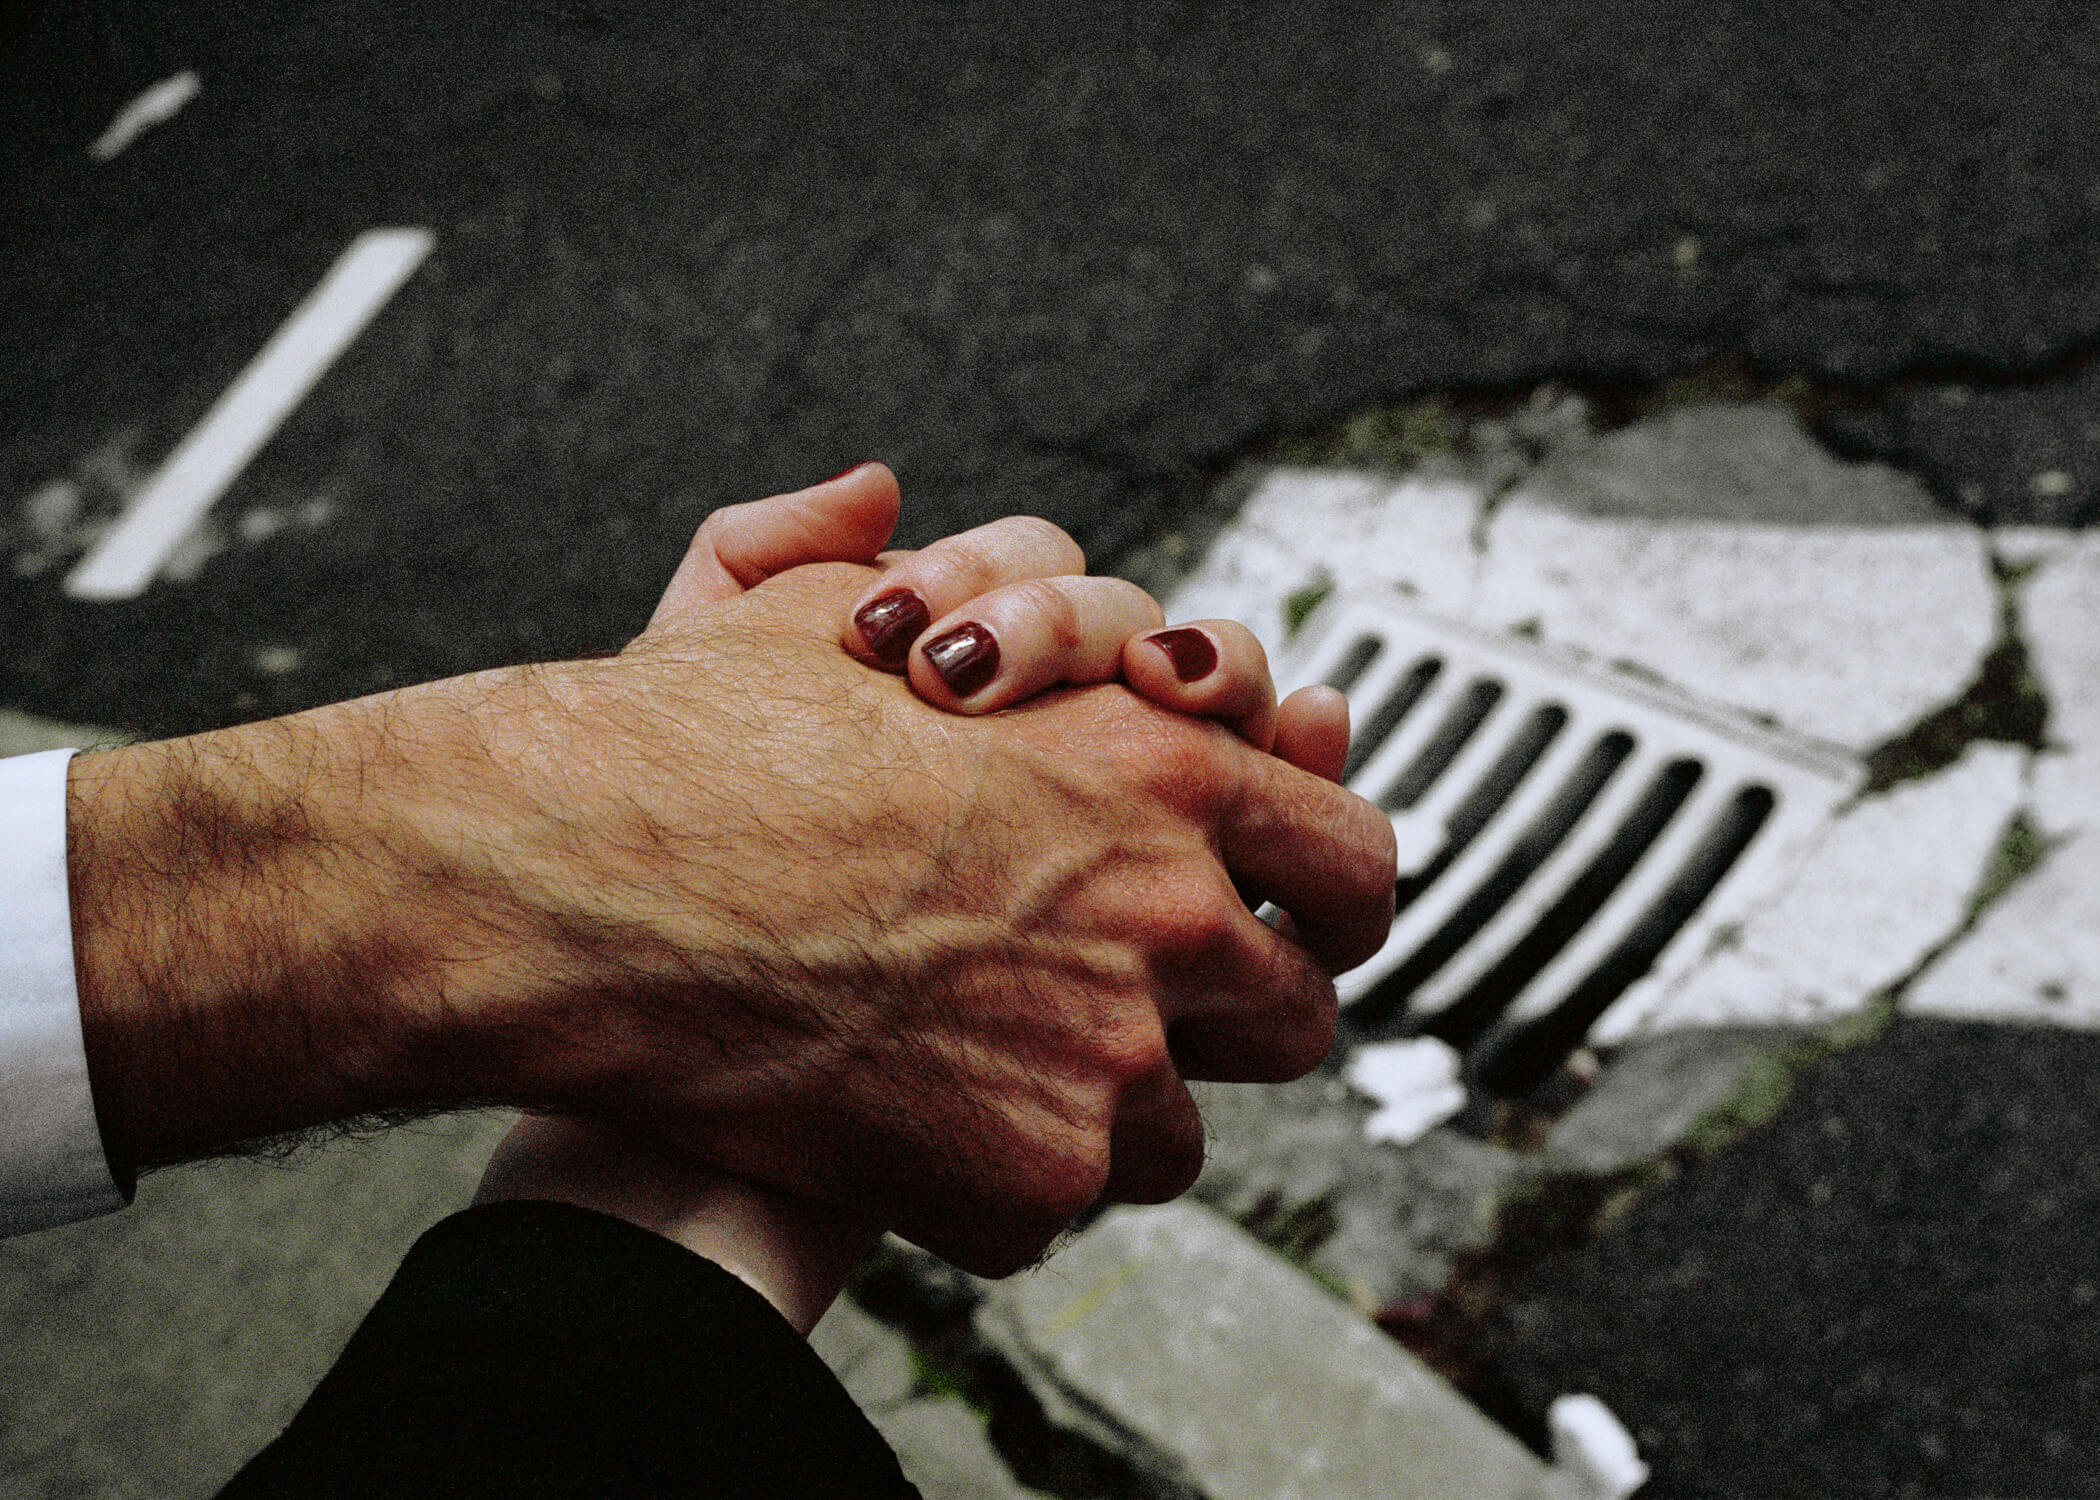 Skaidrė Rudokaitė - Ambivalence people holding hands the south west collective of photography